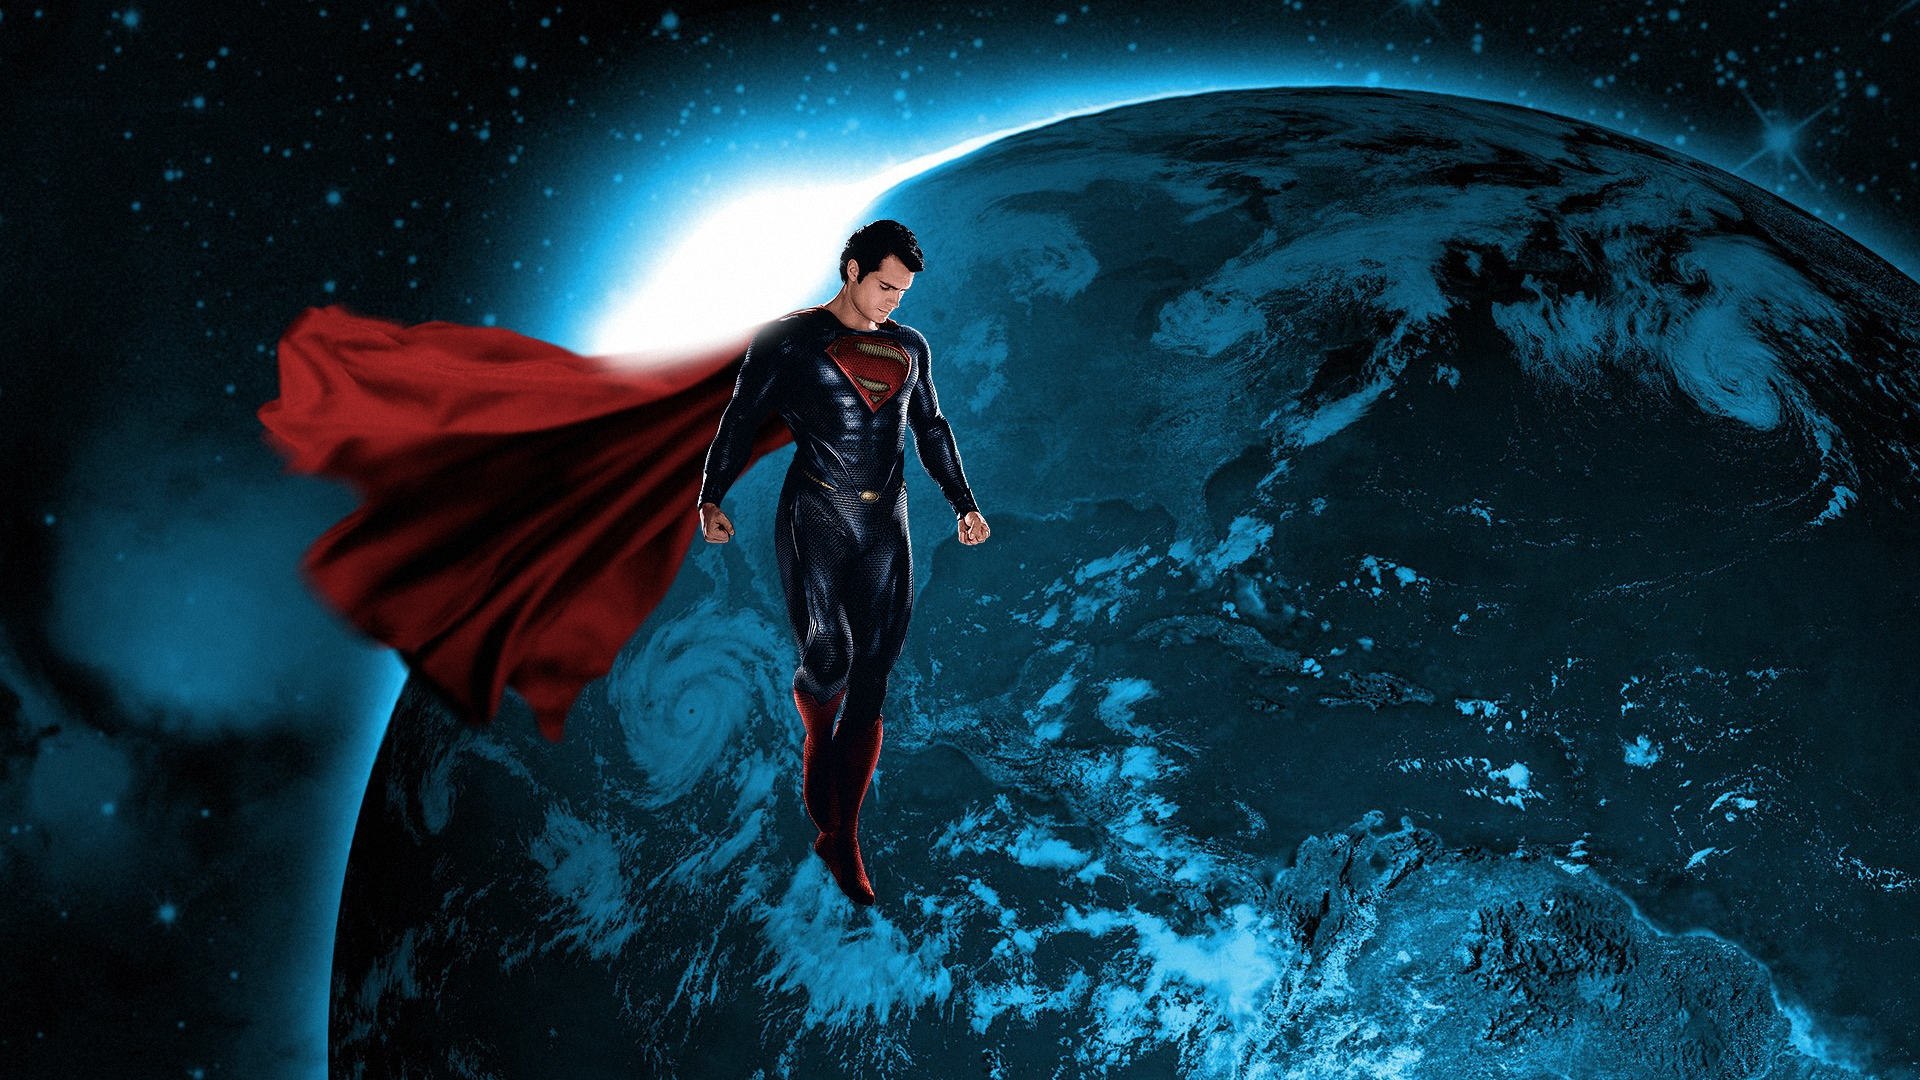 Hd Wallpaper Download Hero Superman